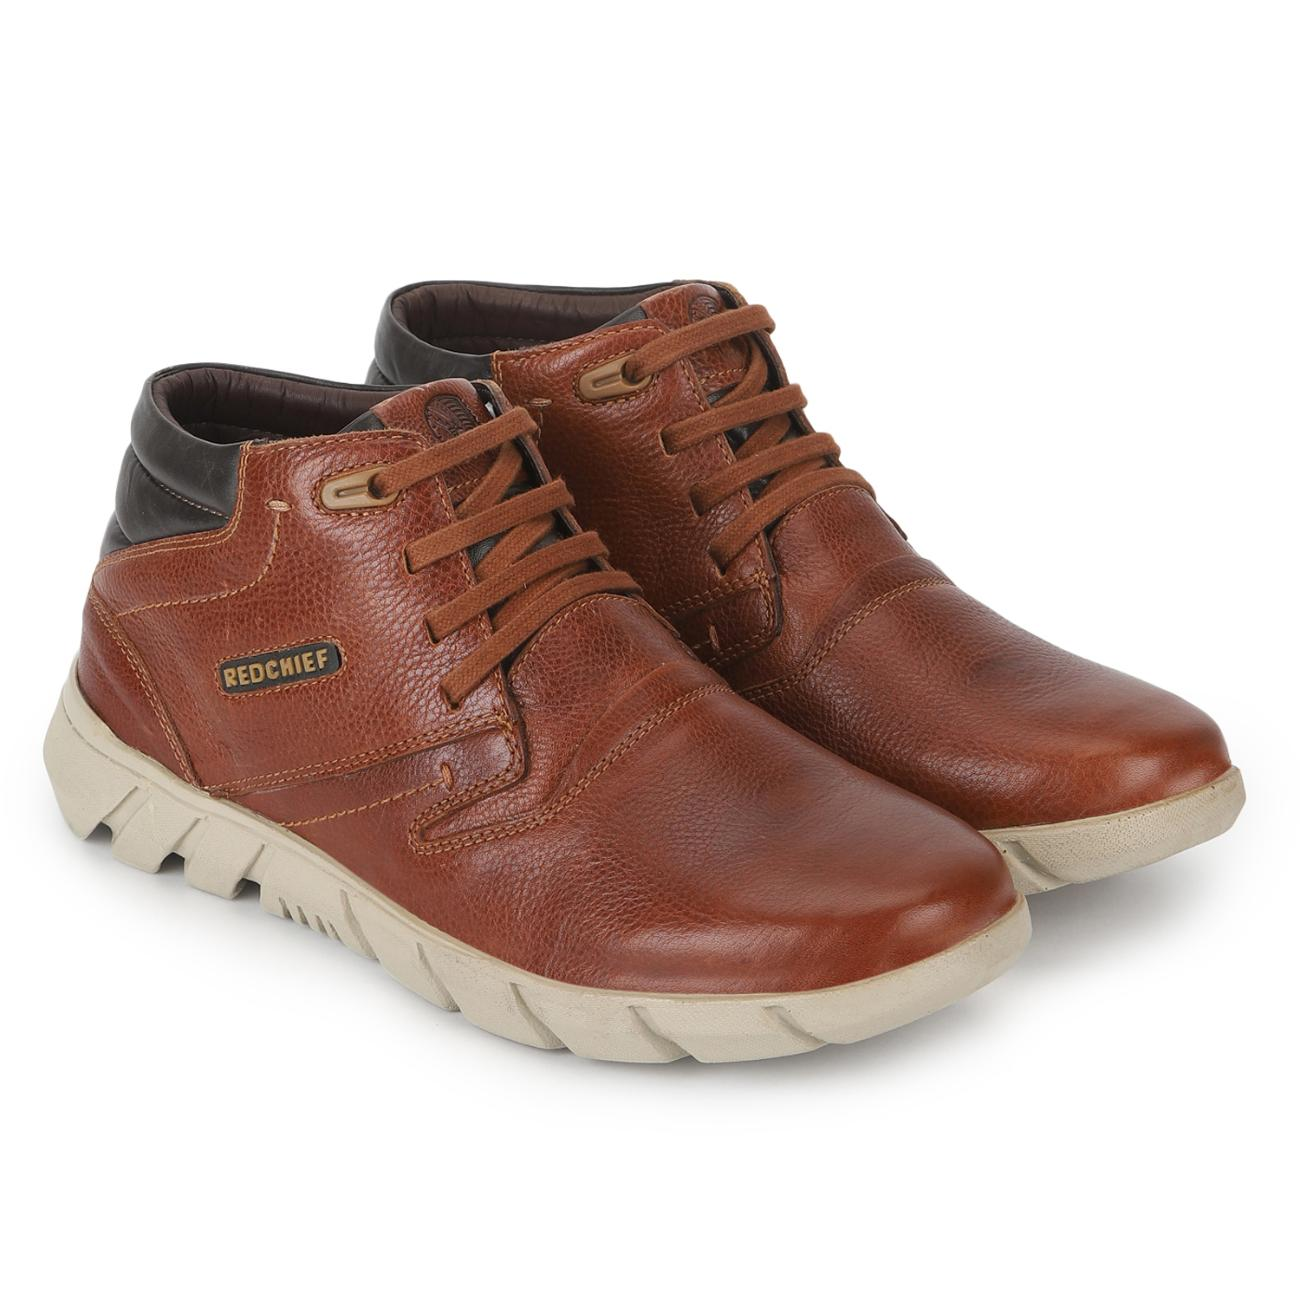 red chief shoes black models with price